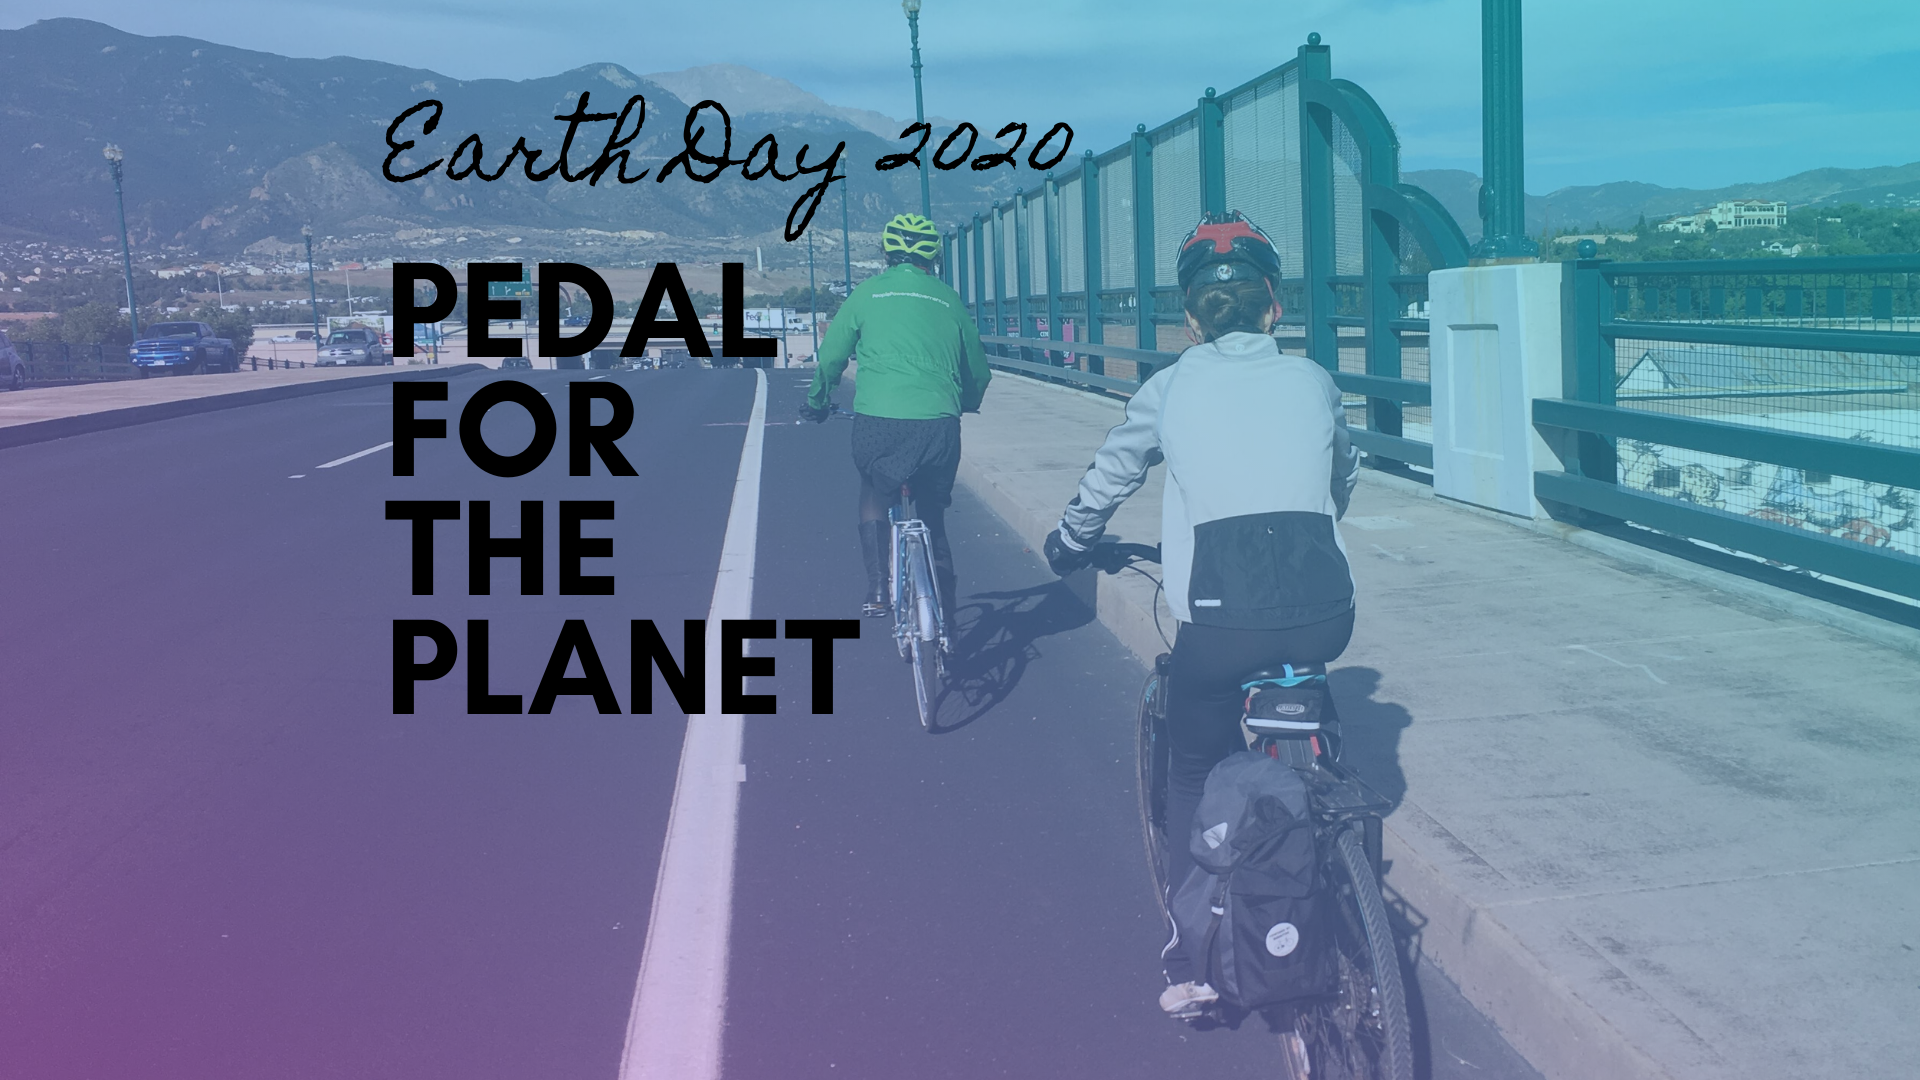 Pedal For The Planet